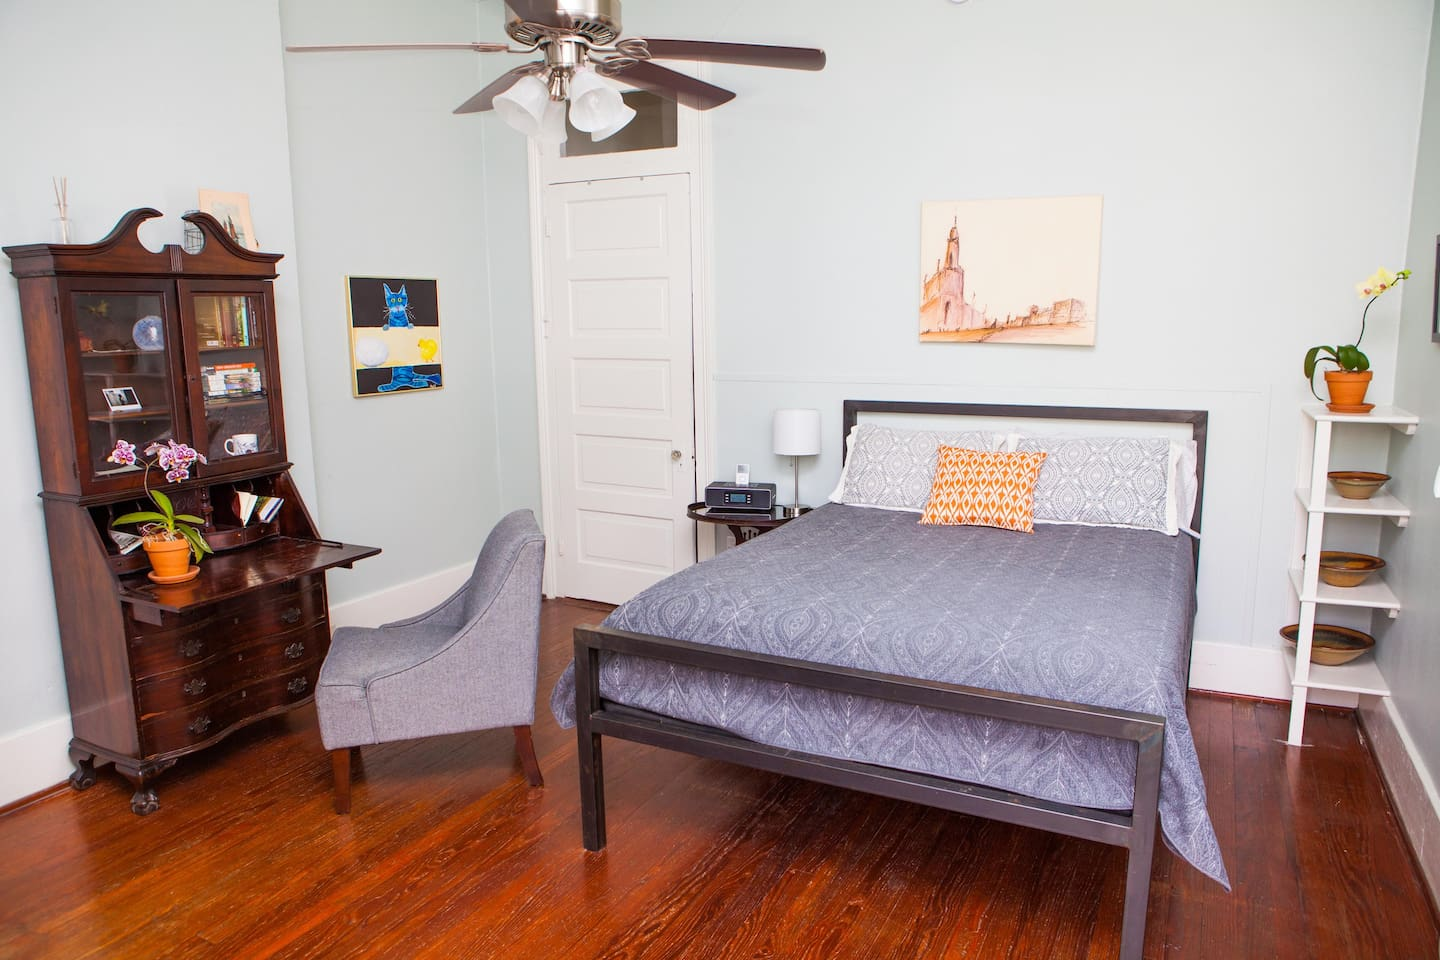 The main room has a queen size bed, a desk and a radio with a loaded ipod.